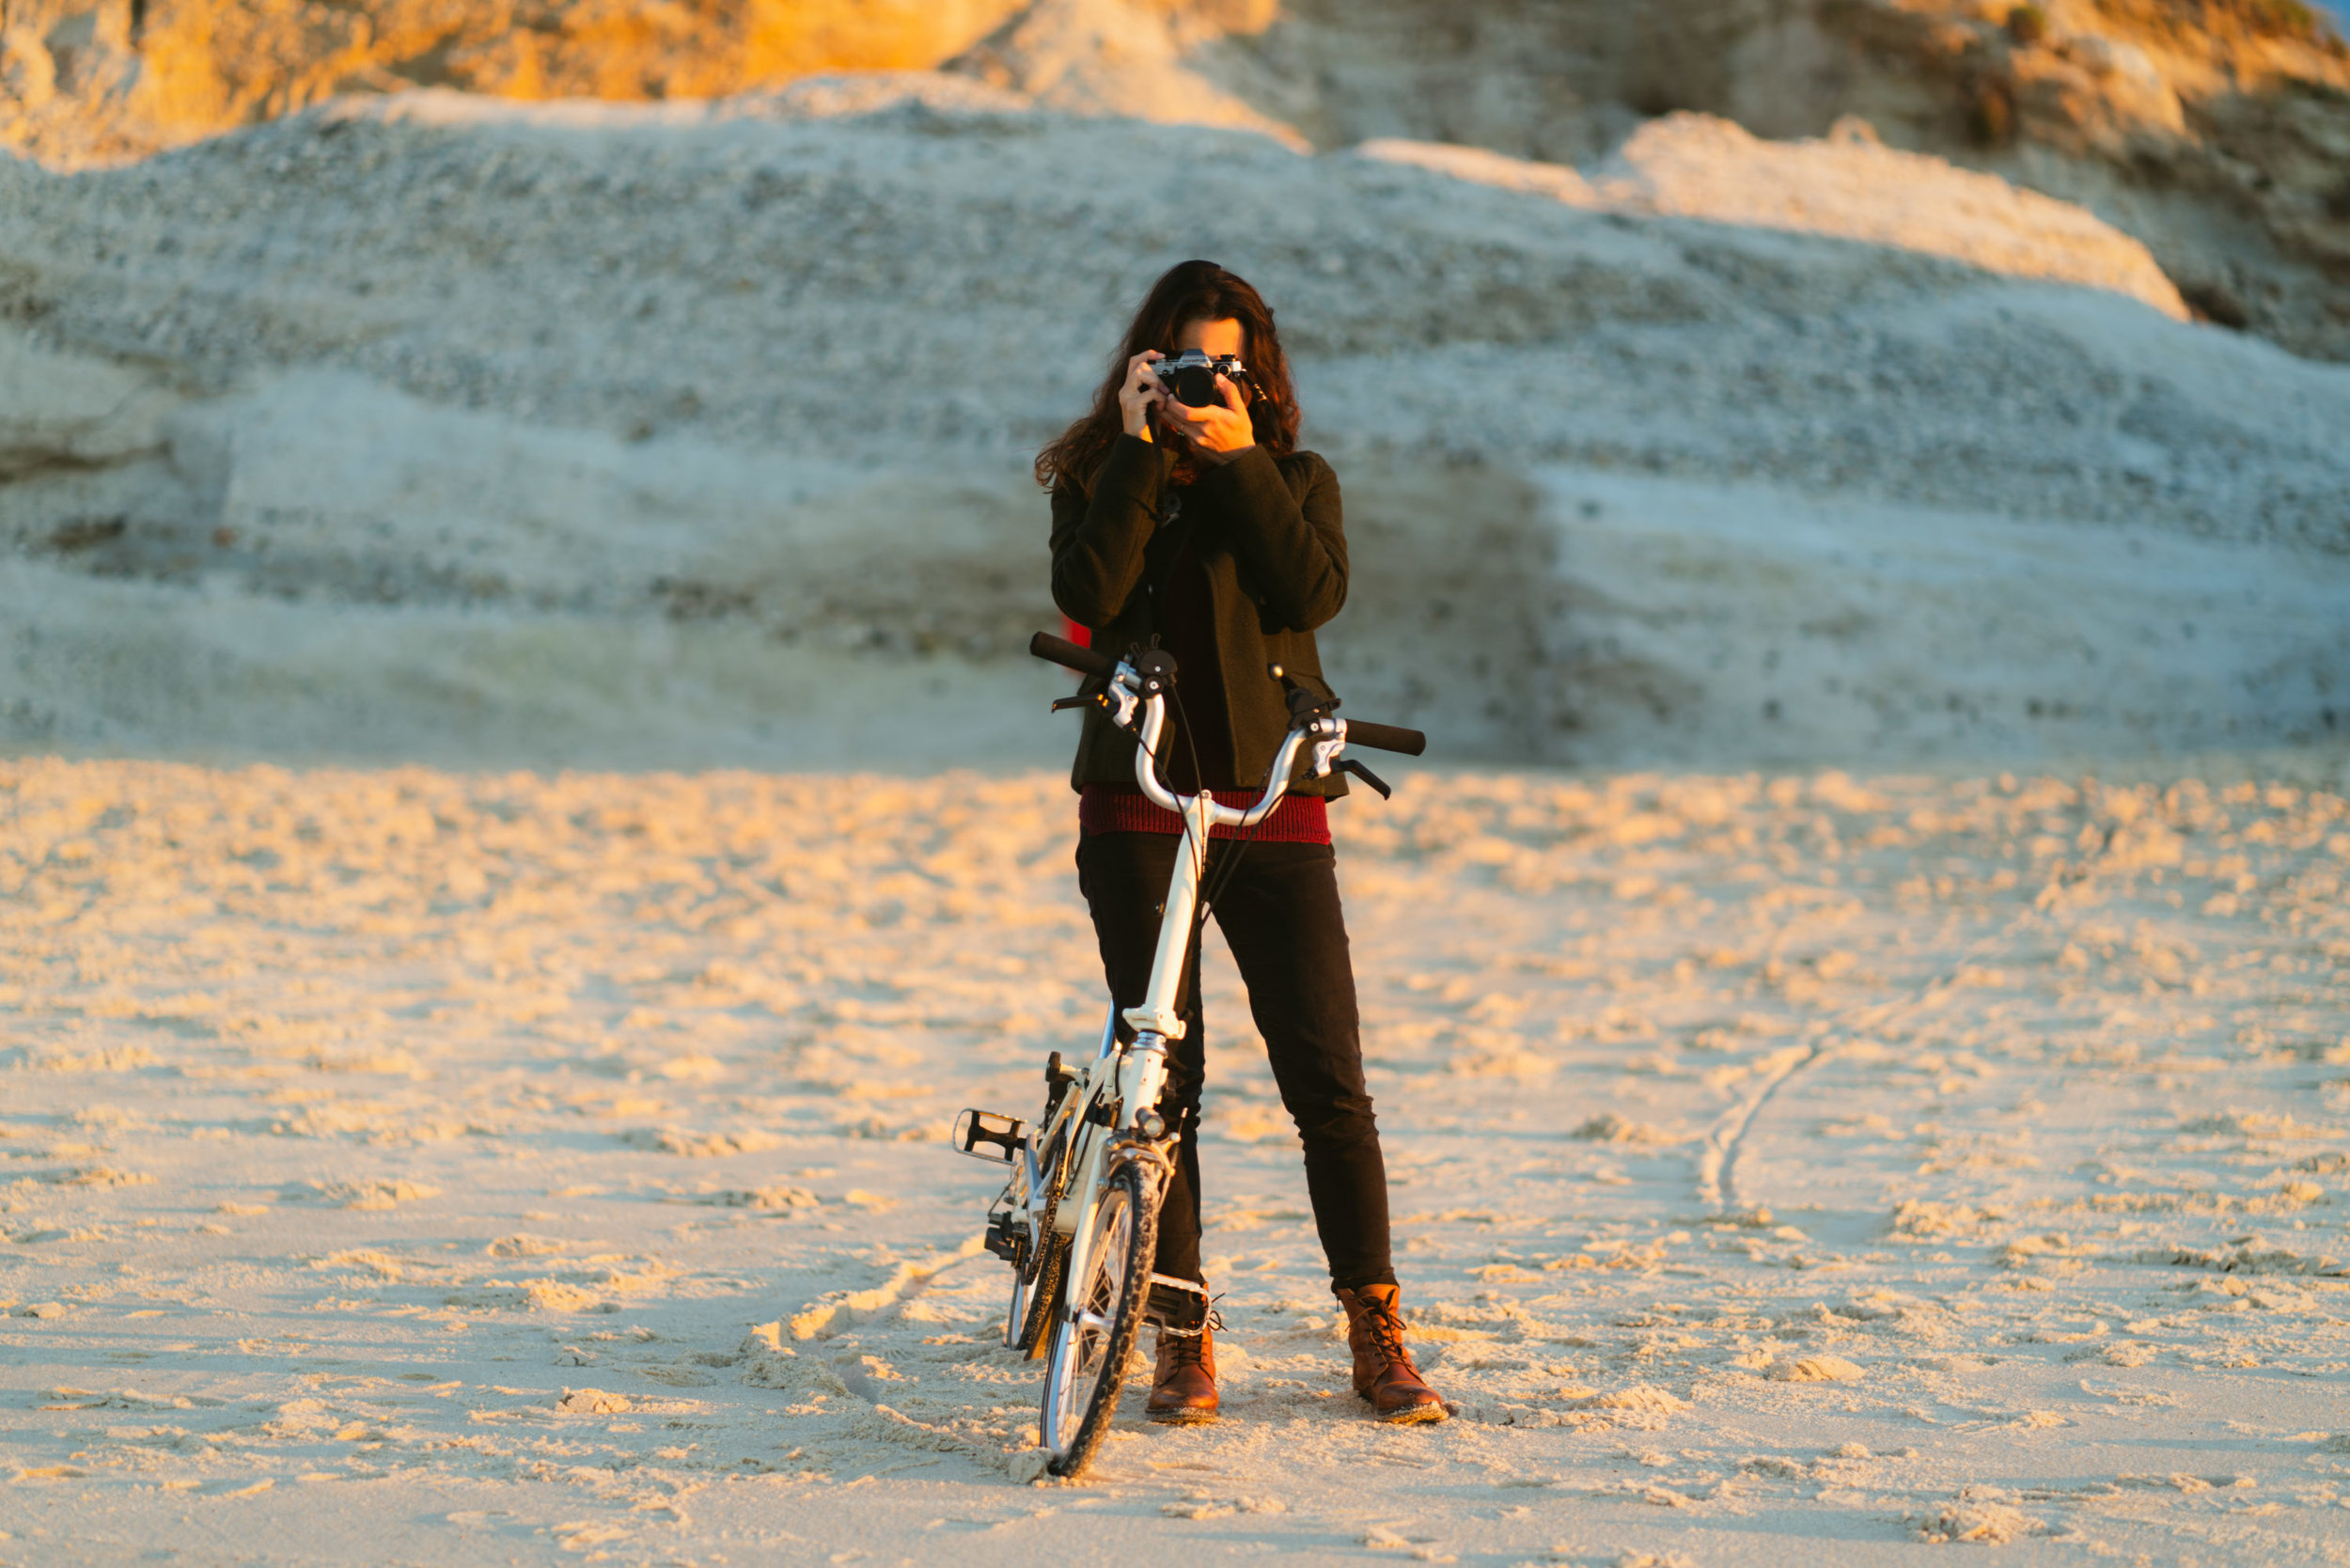 Girl with Brompton bike taking photos with vintage camera at sunset.